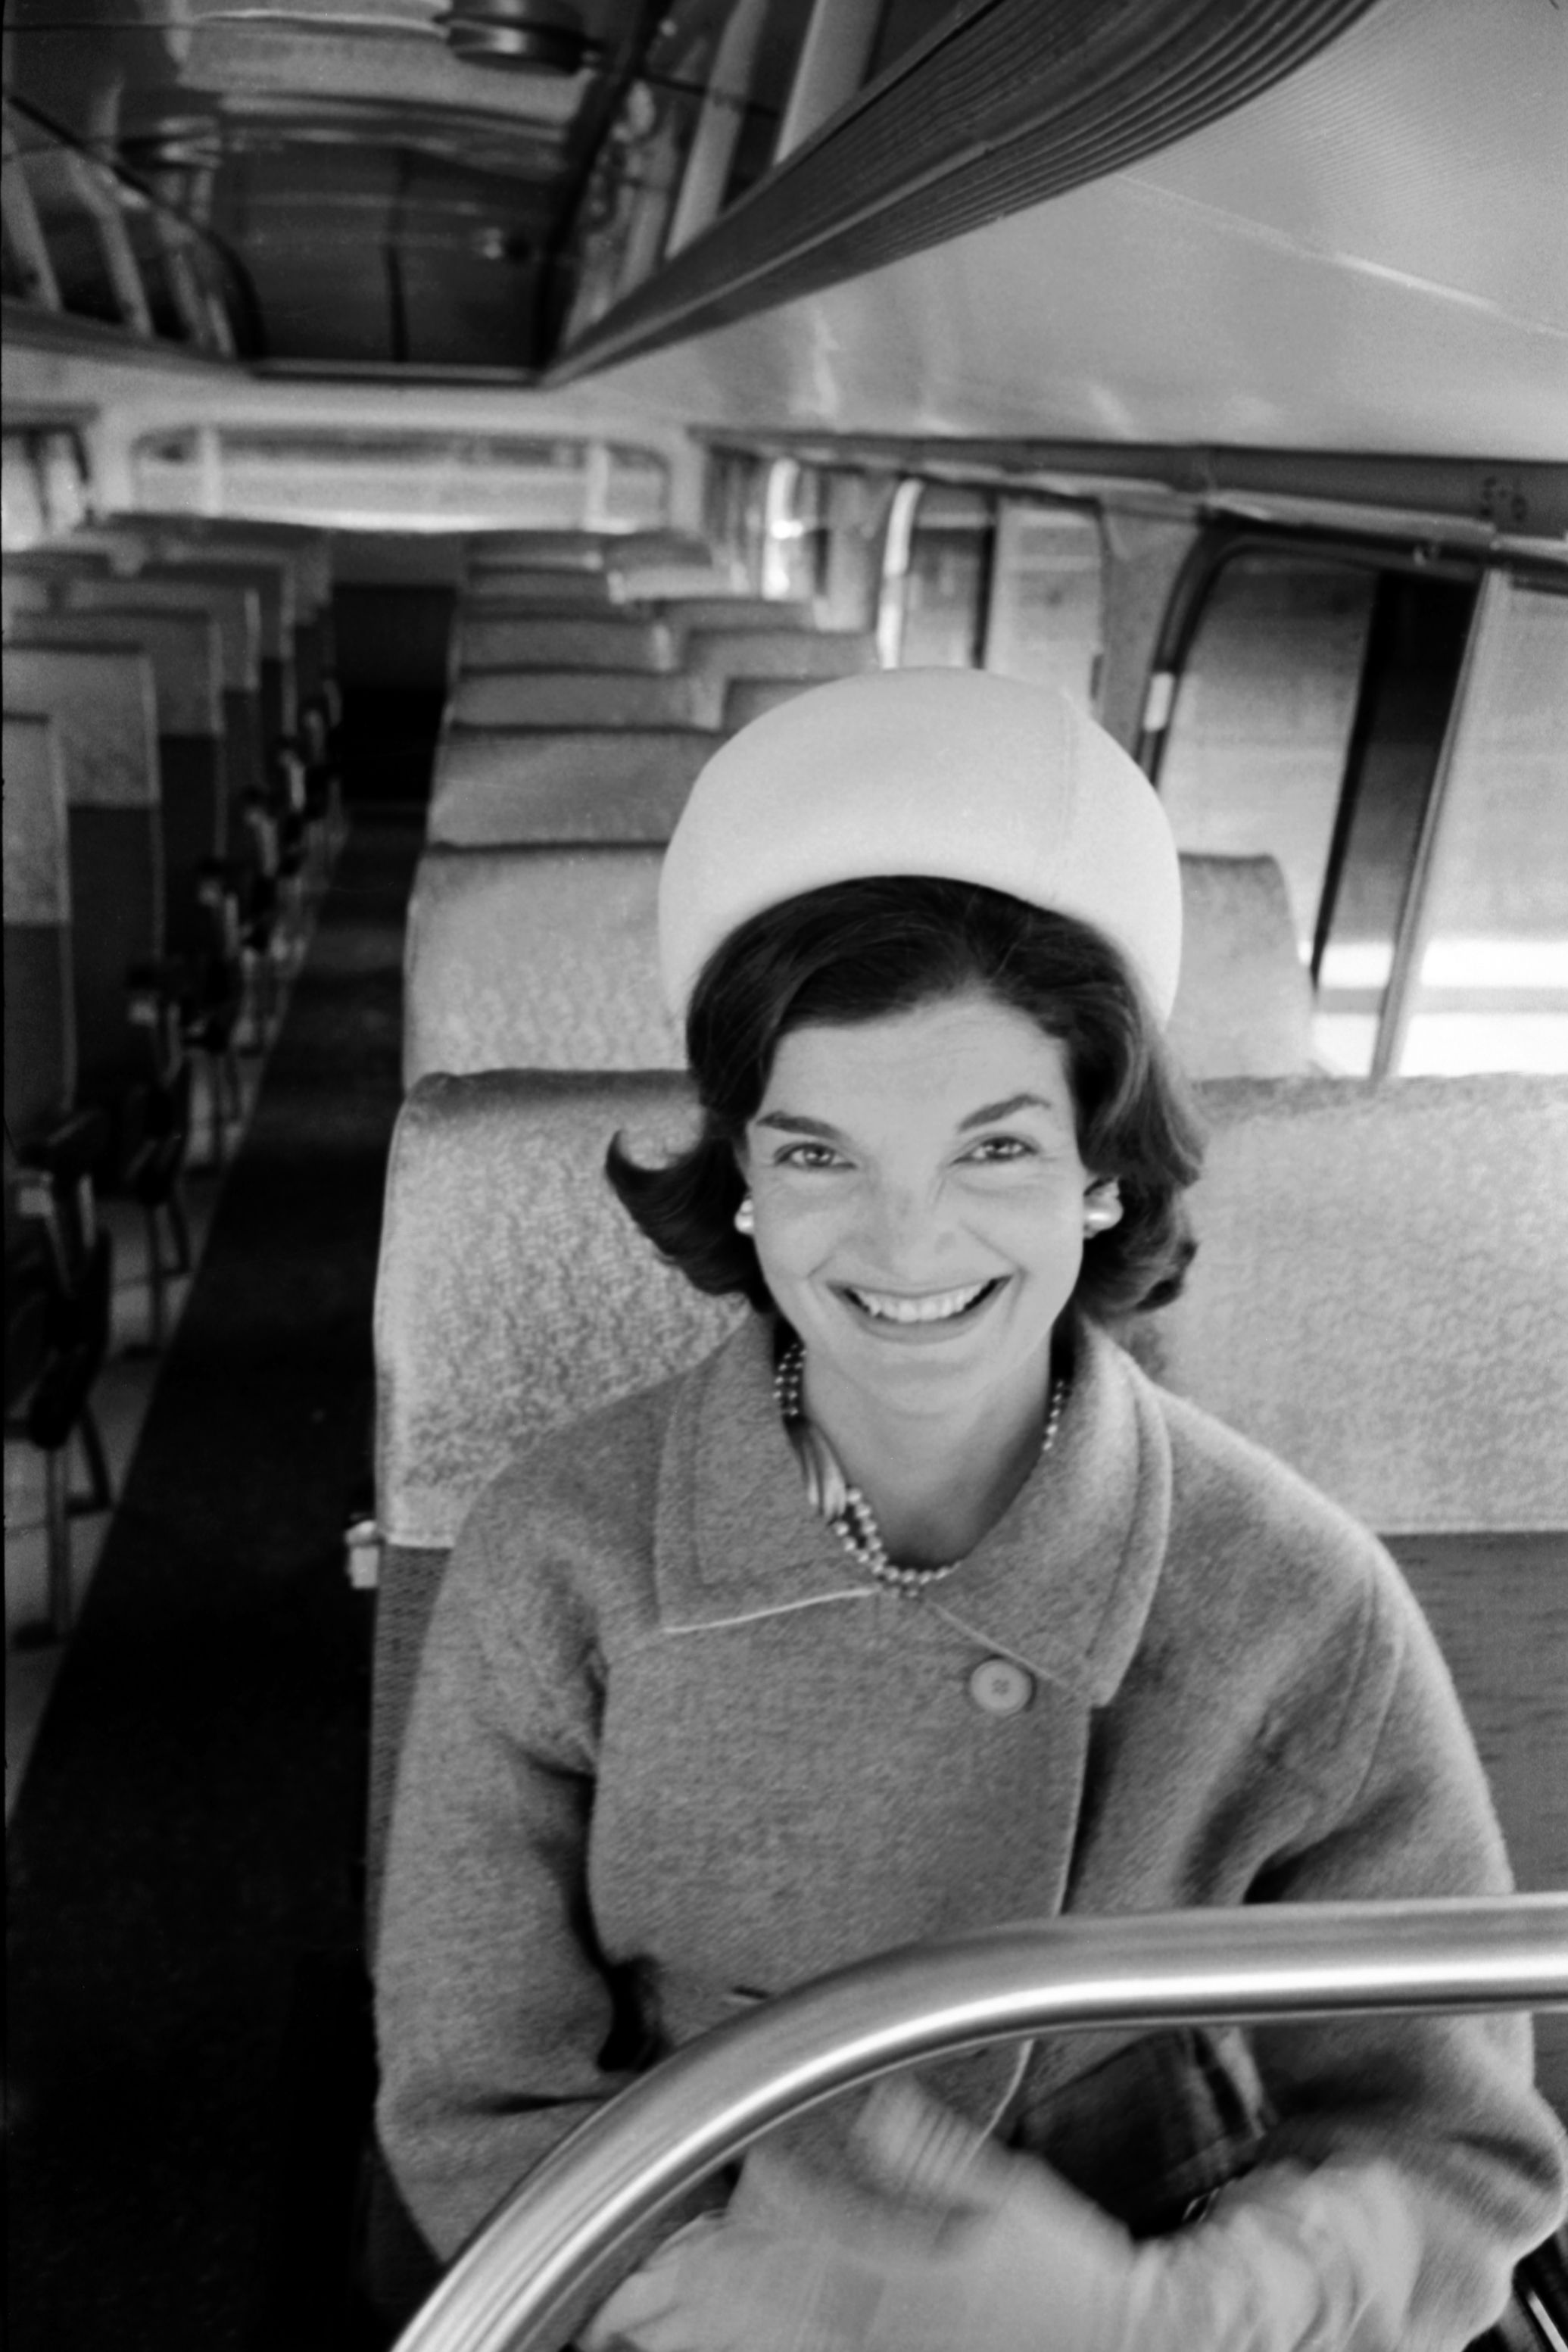 Jackie on the campaign trail for her husband Jack's presidential run.